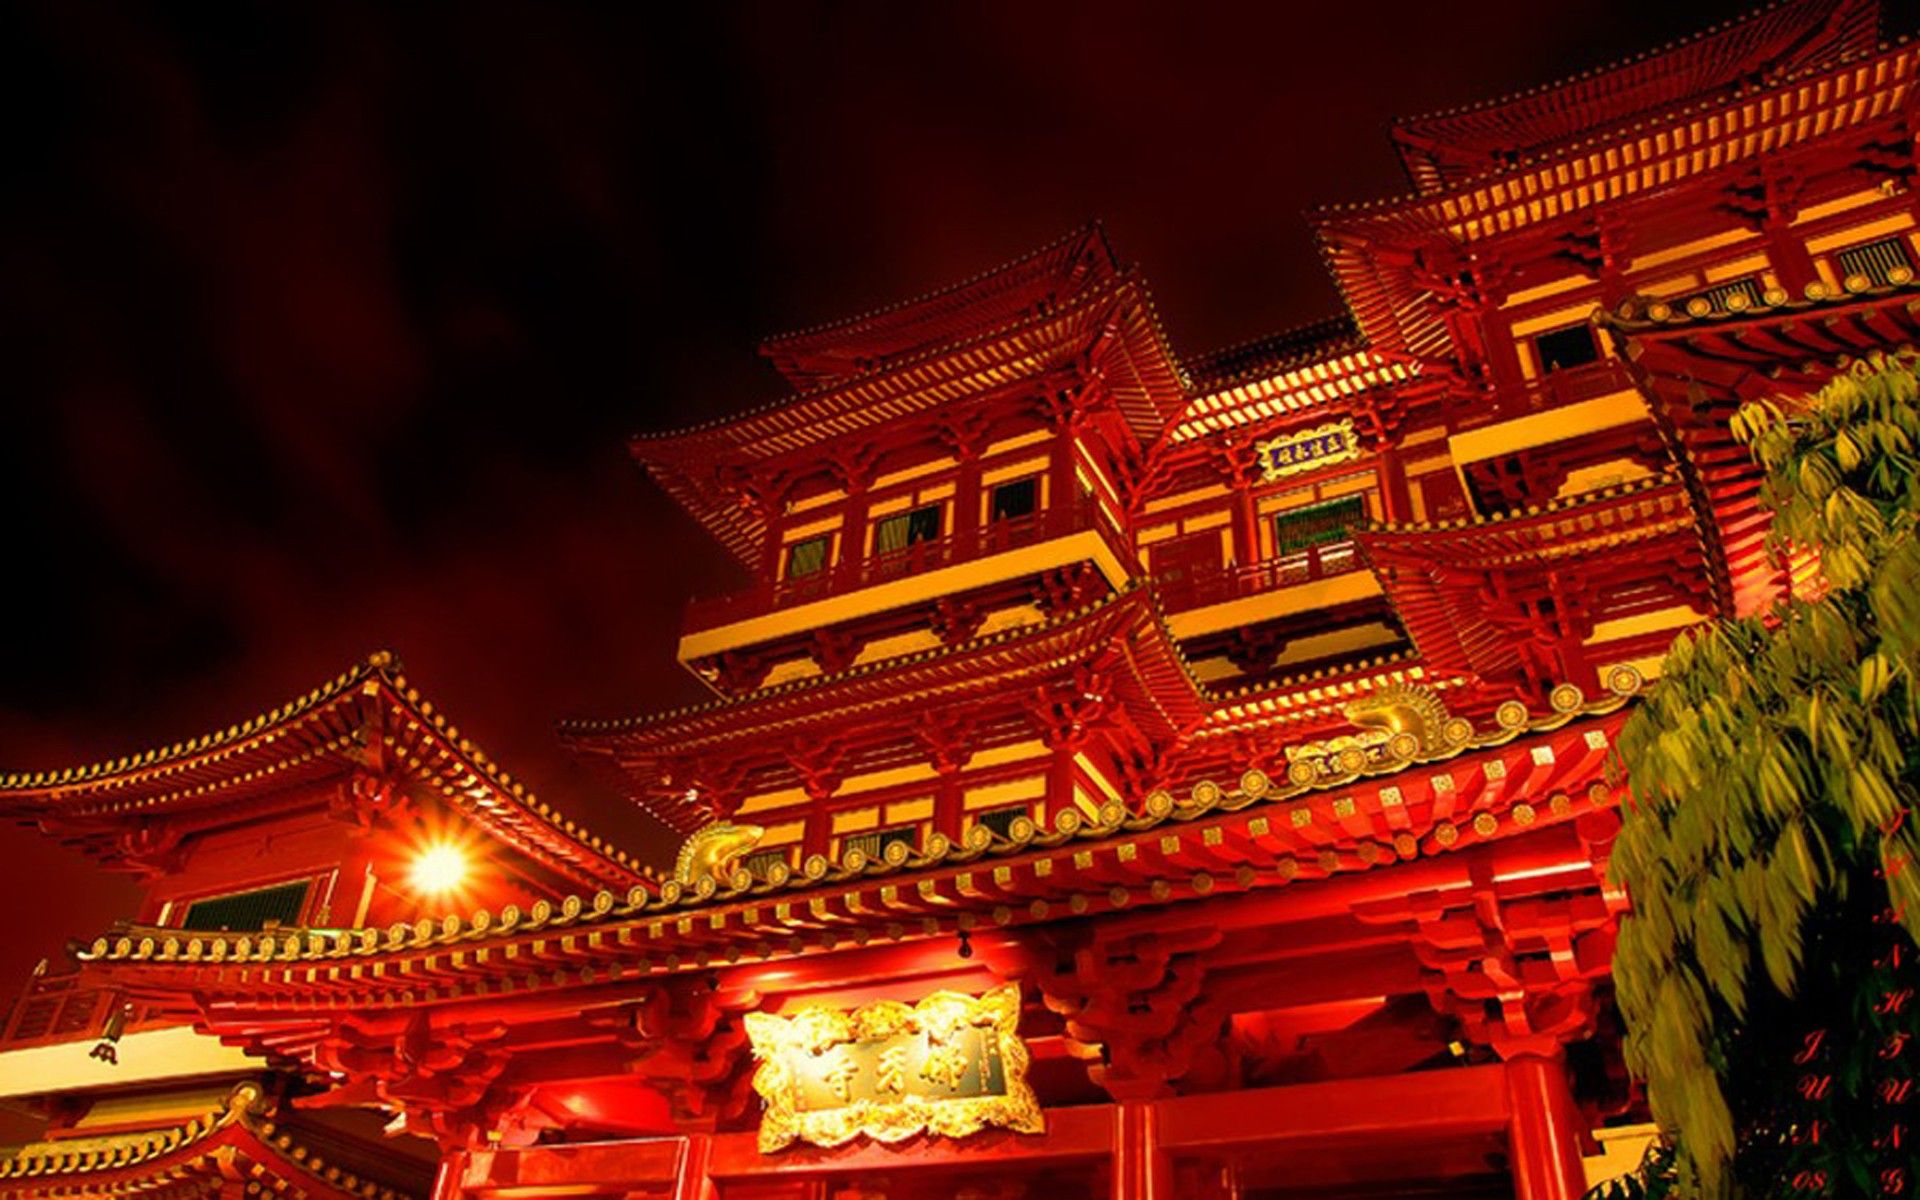 1920x1200 Traditional Chinese architecture wallpapers and images - wallpapers ...